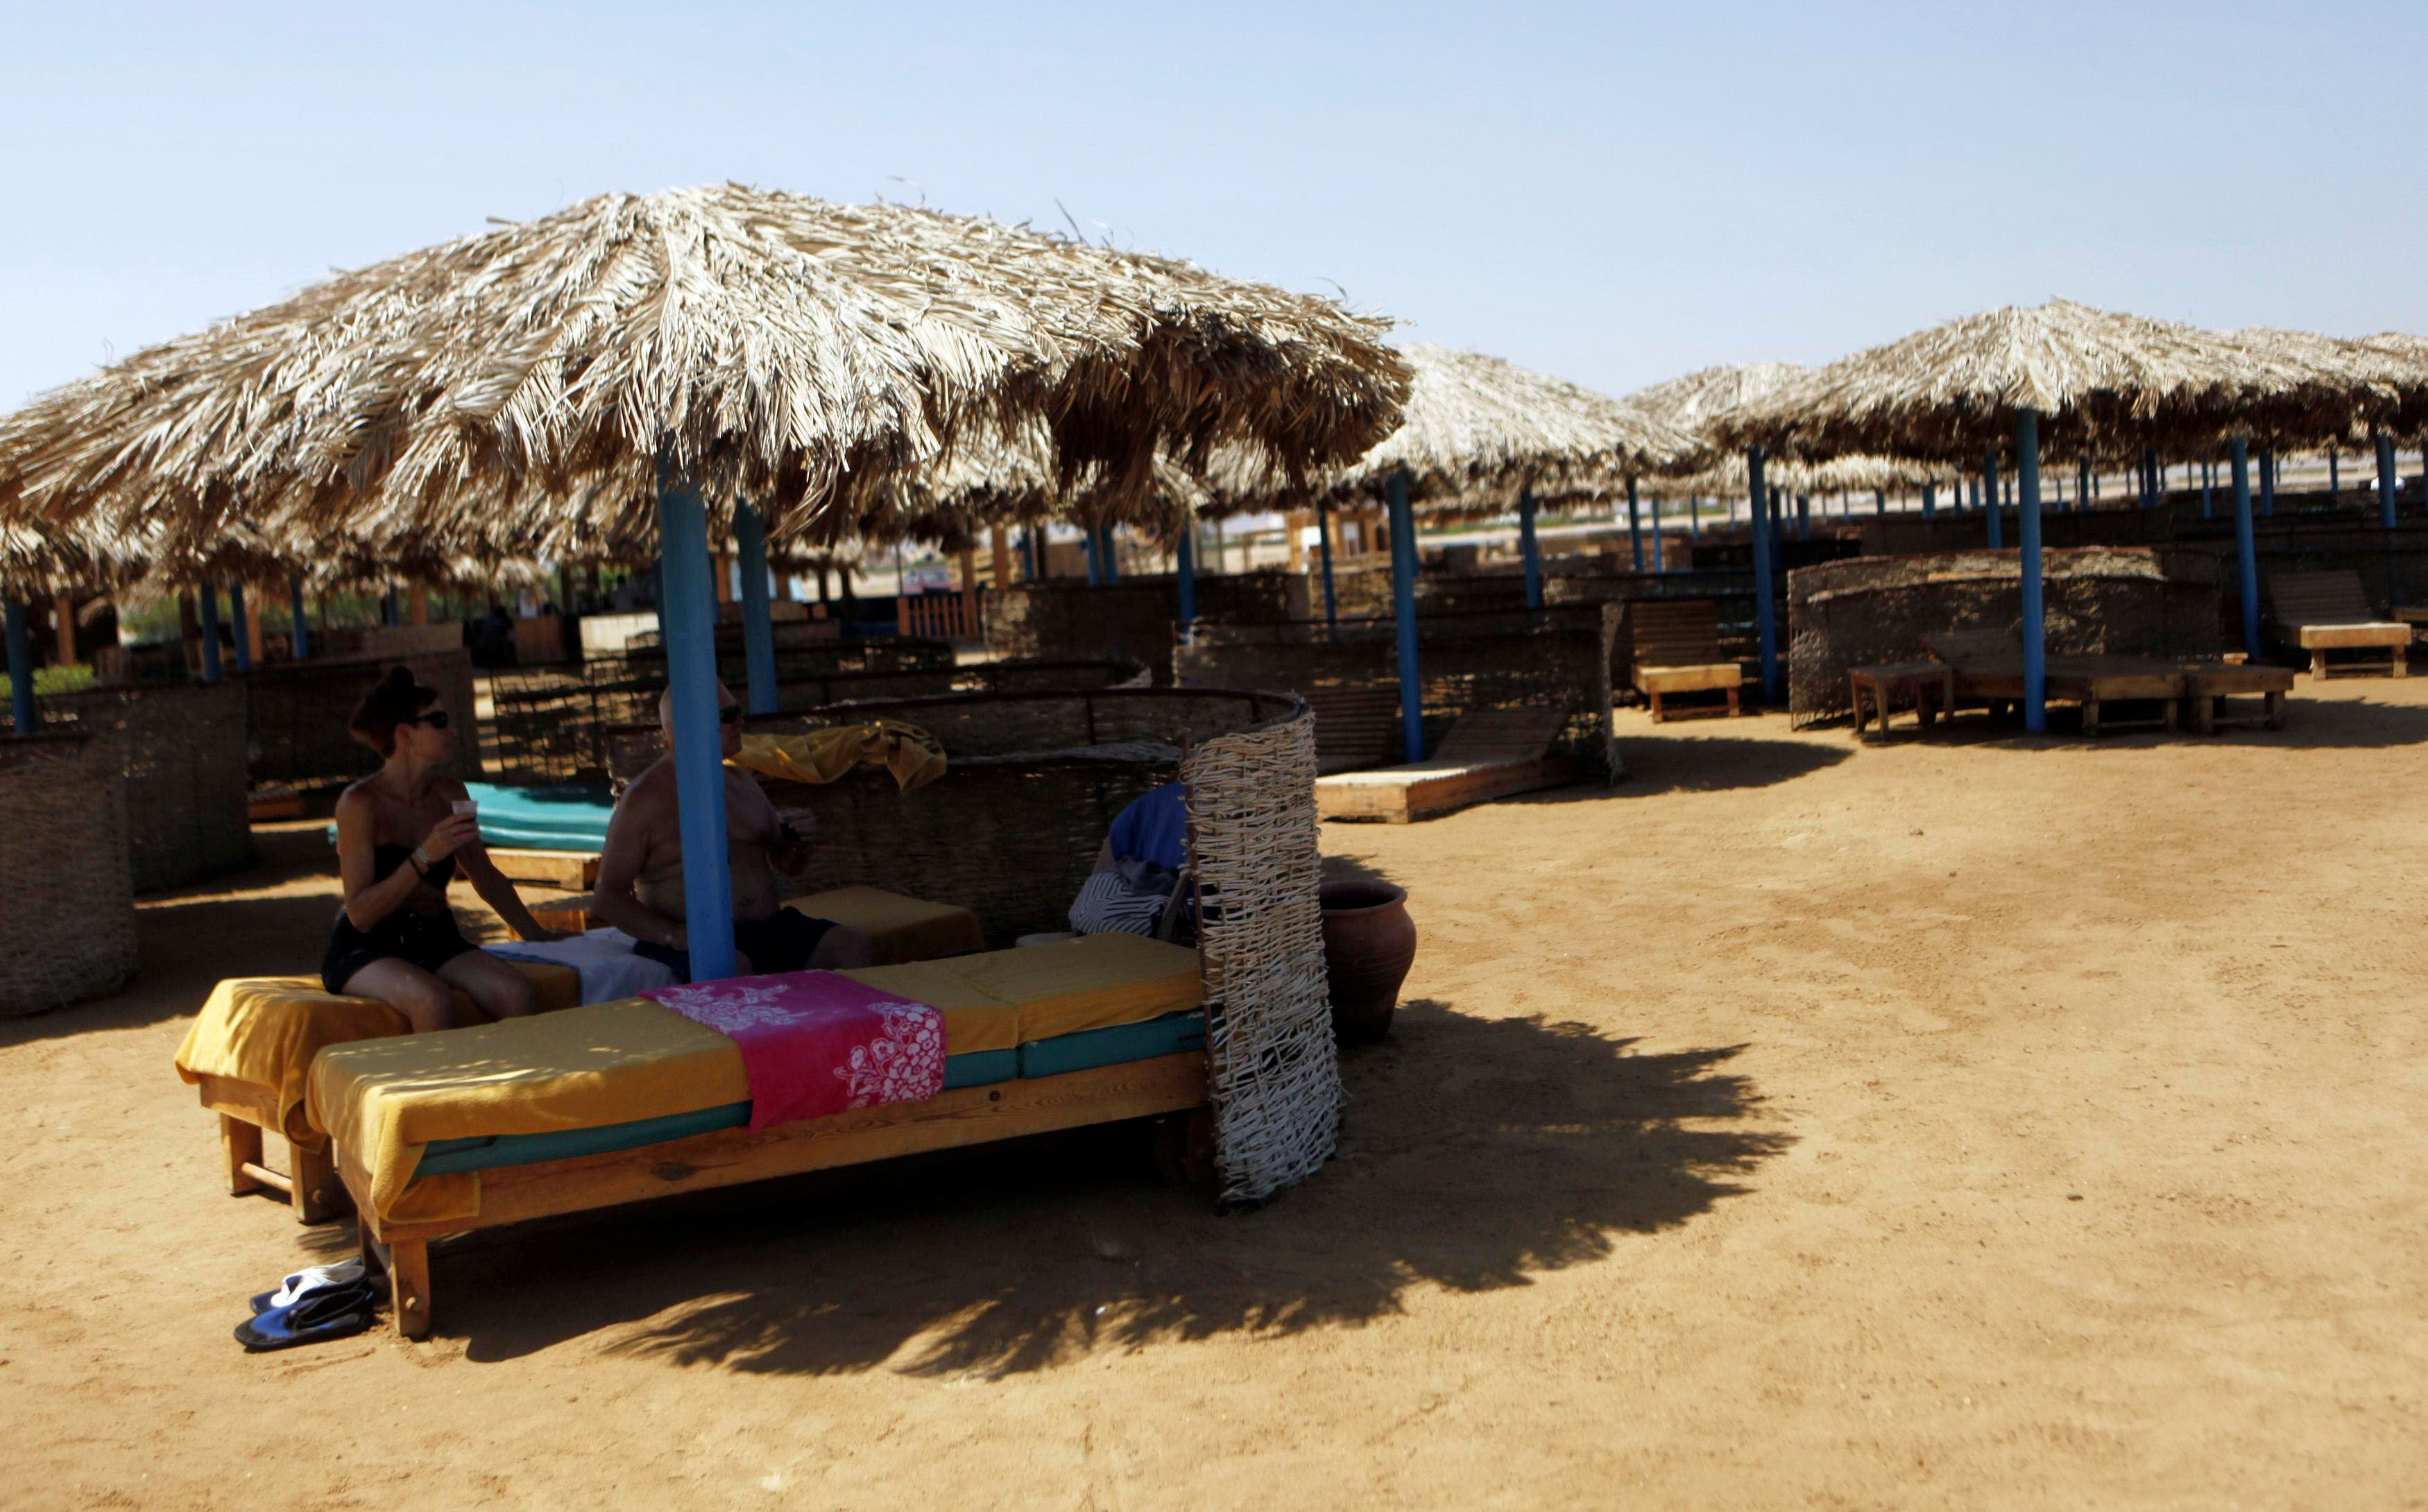 Egypt's tourism hit hard by crisis